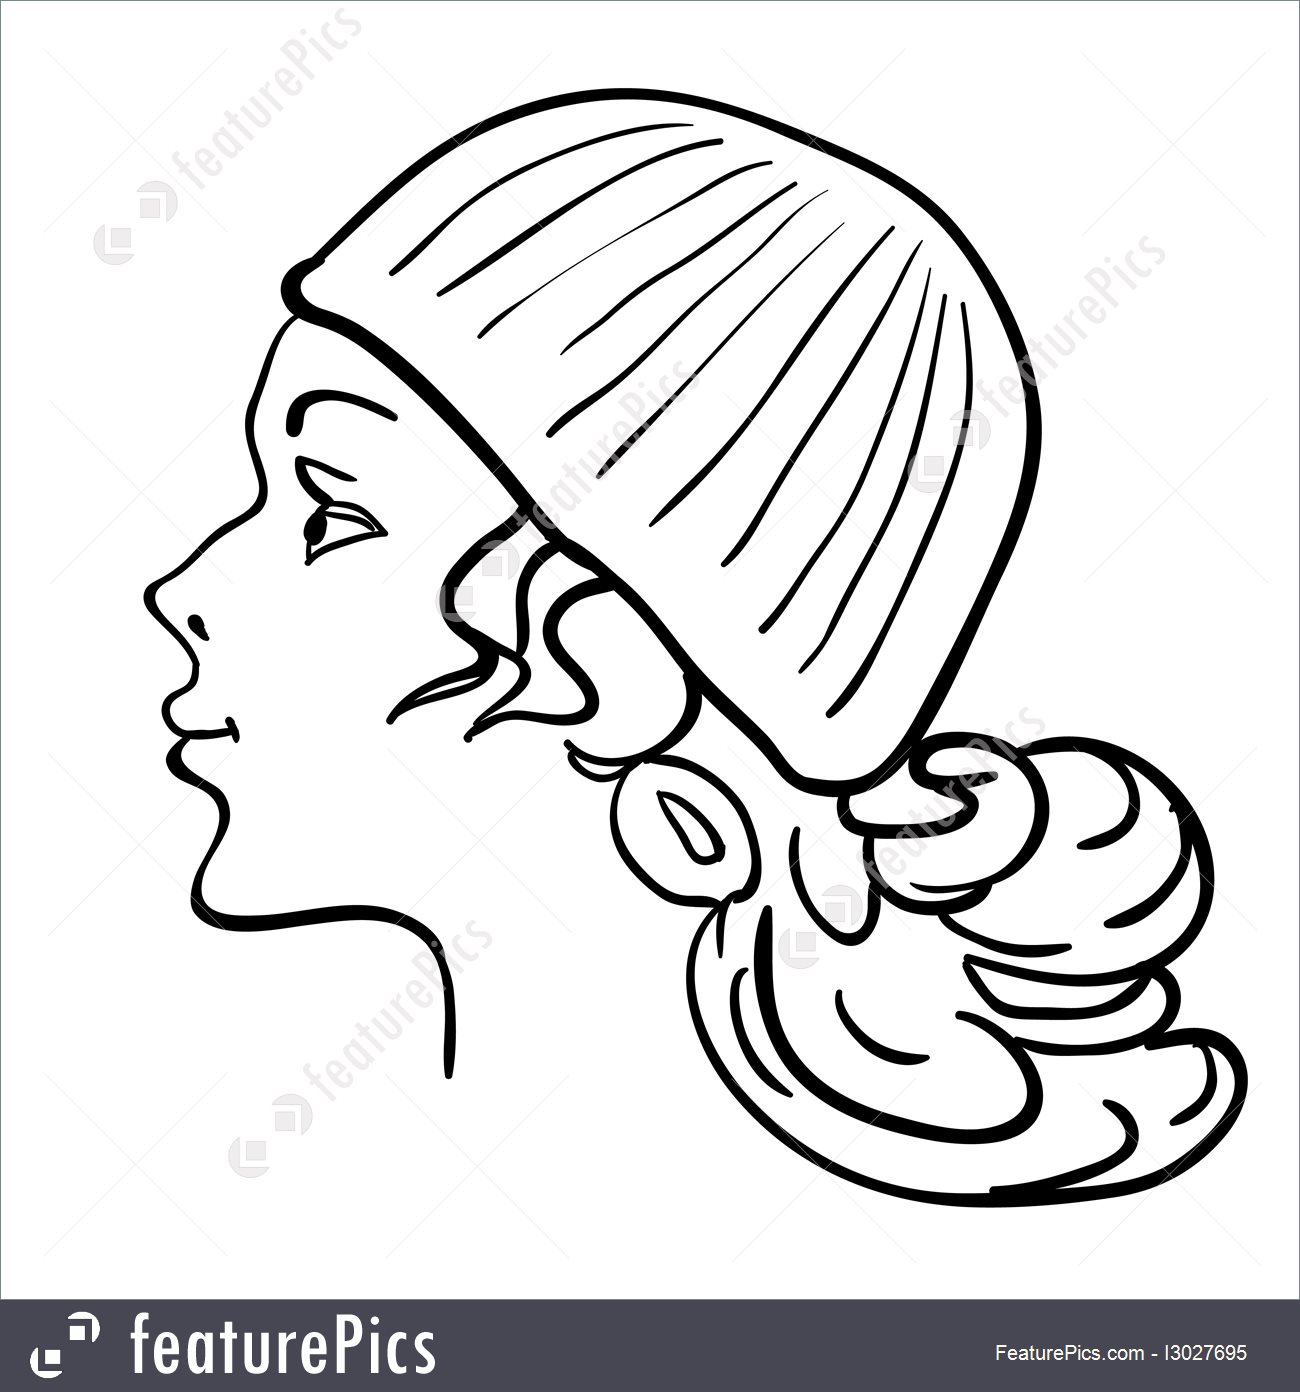 woman hand drawing at getdrawings com free for personal use woman